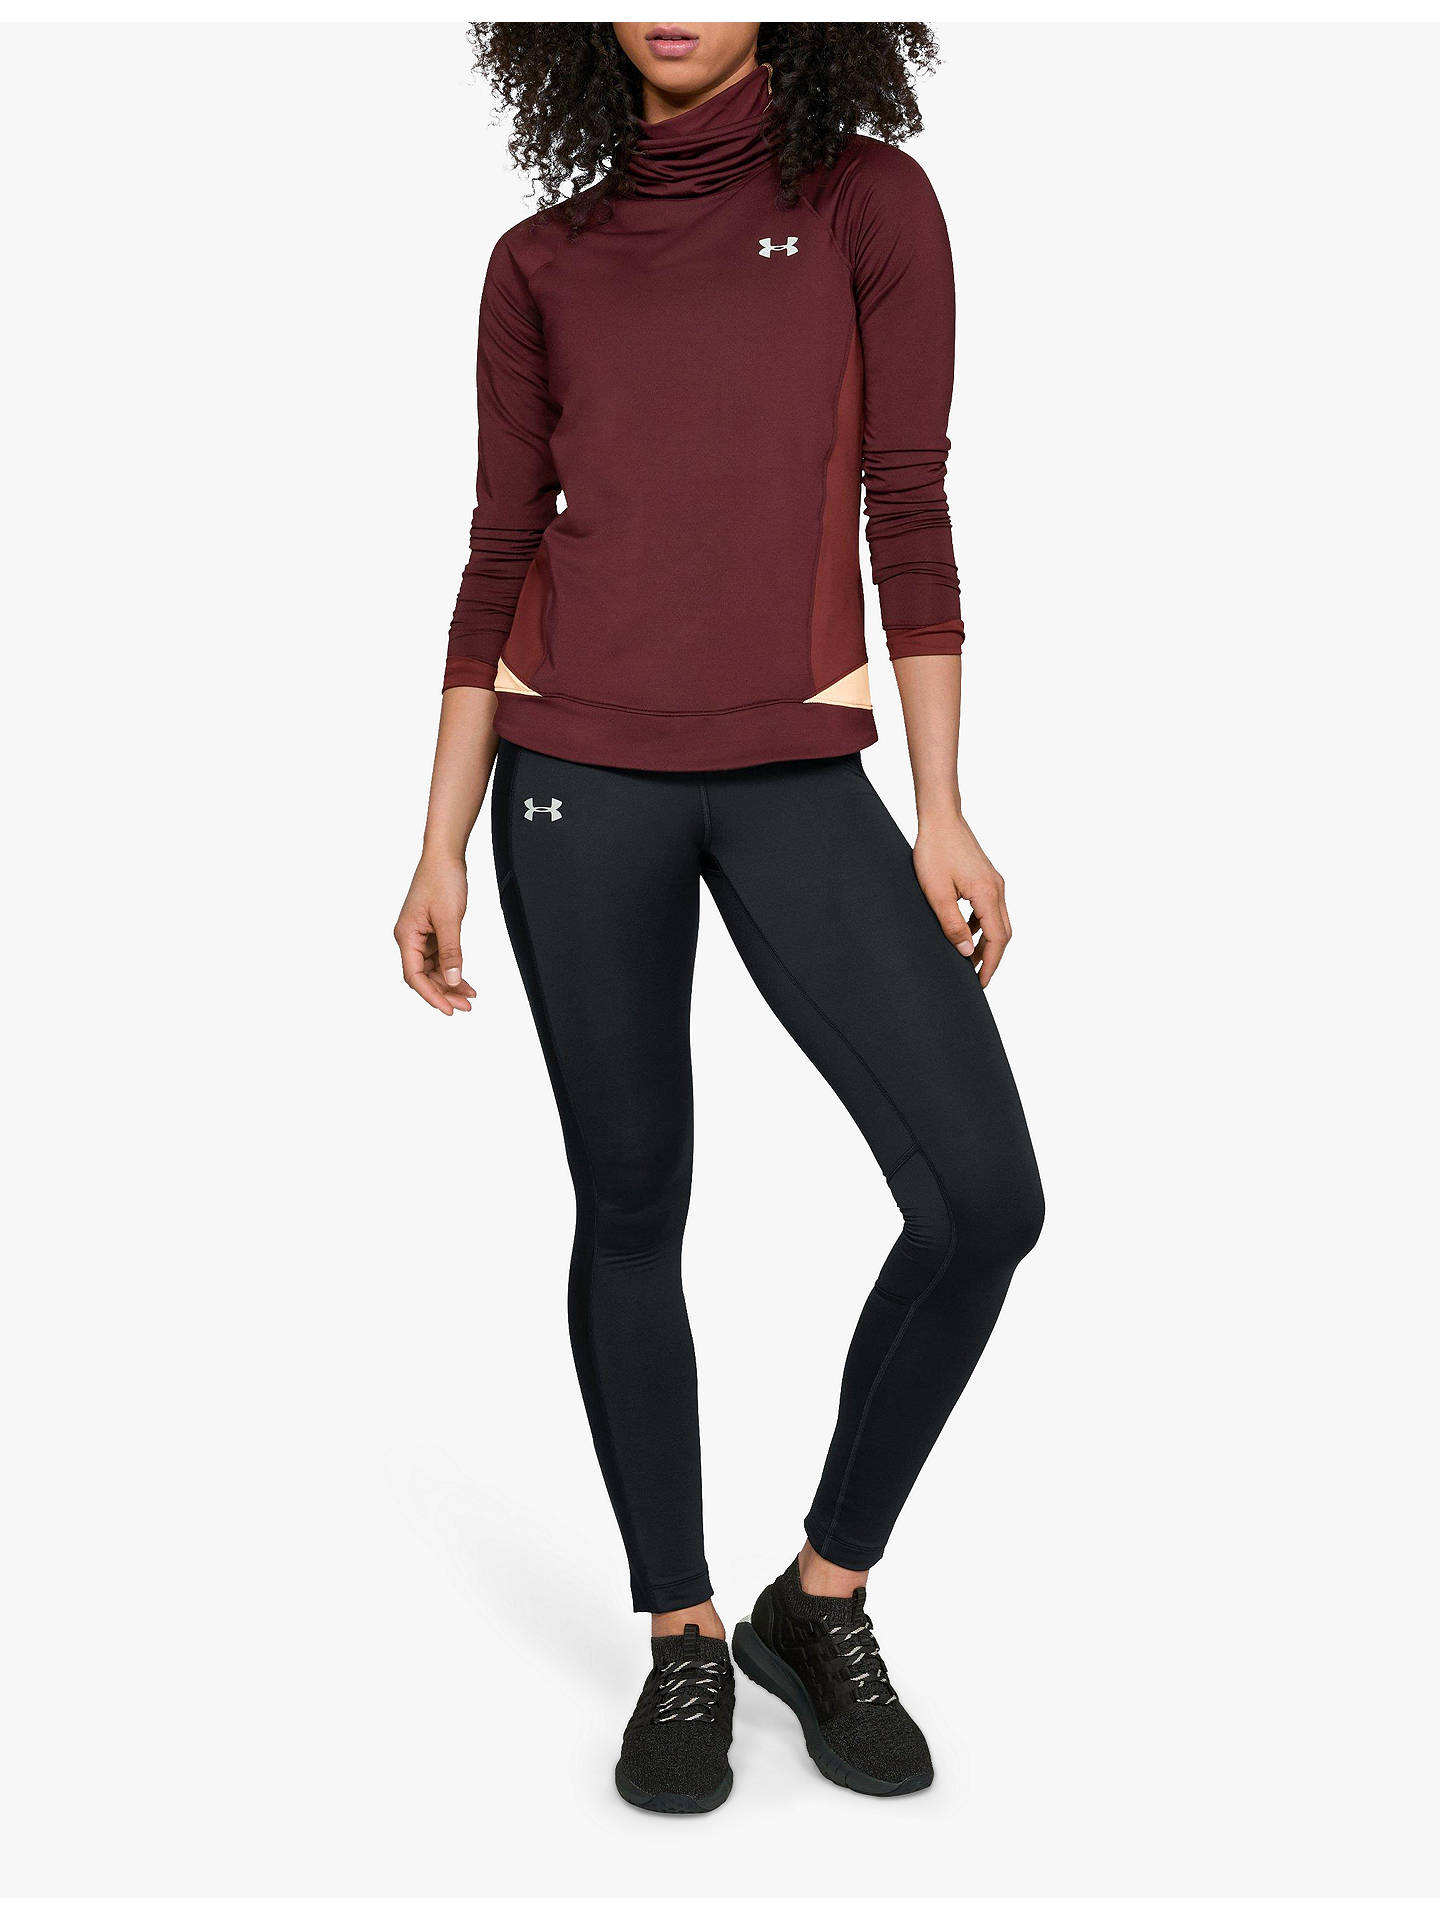 8c60cf97975b8 Buy Under Armour ColdGear Run Storm Running Tights, Black, XS Online at  johnlewis.